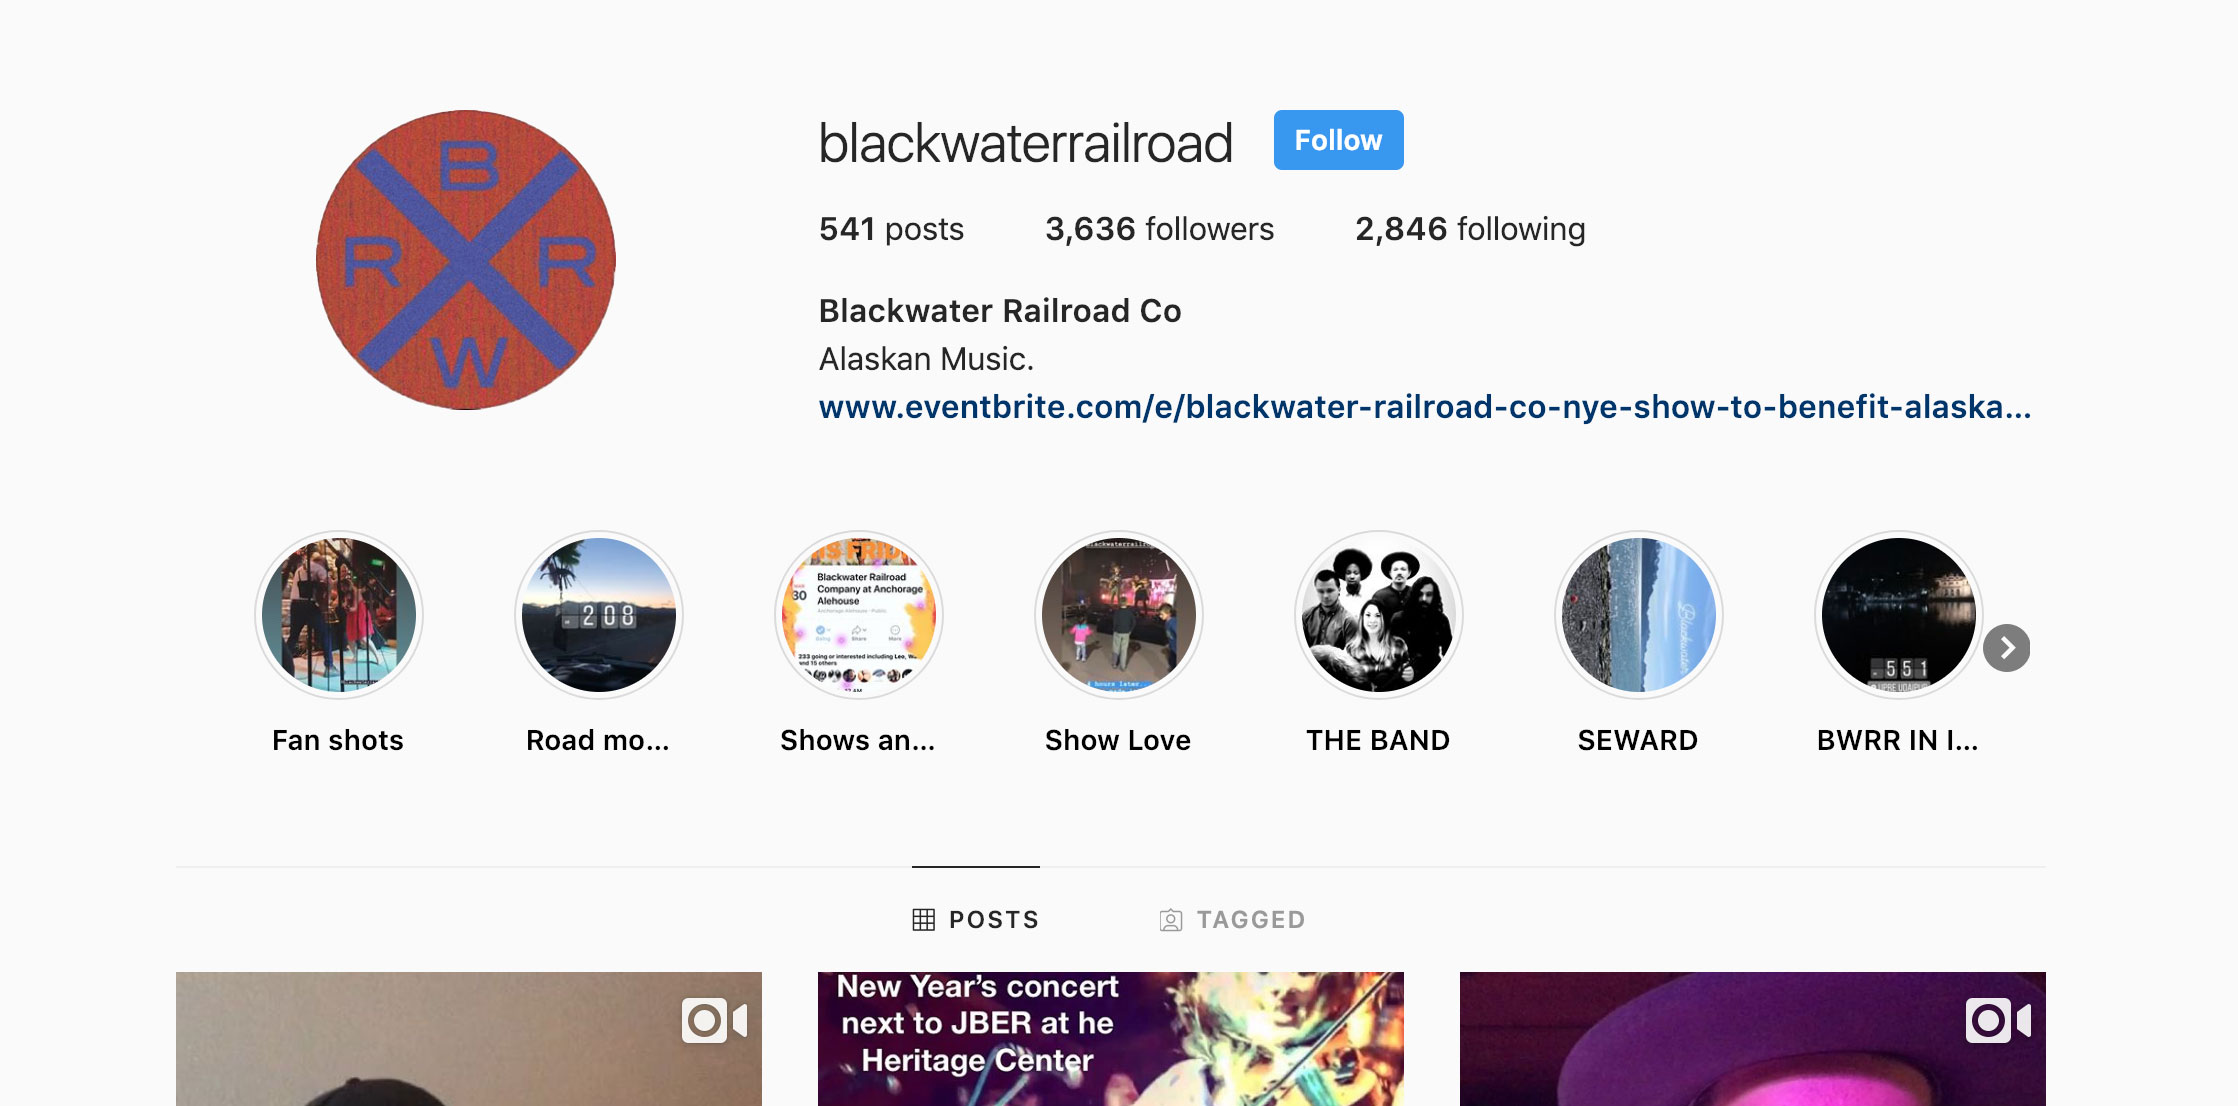 instagram growth marketing - With the gorgeous backdrop of Alaska, creating great content wasn't difficult for Blackwater Railroad, growing the account was another matter altogether.We worked to develop a targeted growth strategy to not only grow the account, but grow it with the right people. On average their account has been organically growing 700-800 followers every month since launch.We're also managing the growth of the band members' personal accounts to help drive traffic back to the primary account. These accounts have organically been adding more than 500 followers/month.